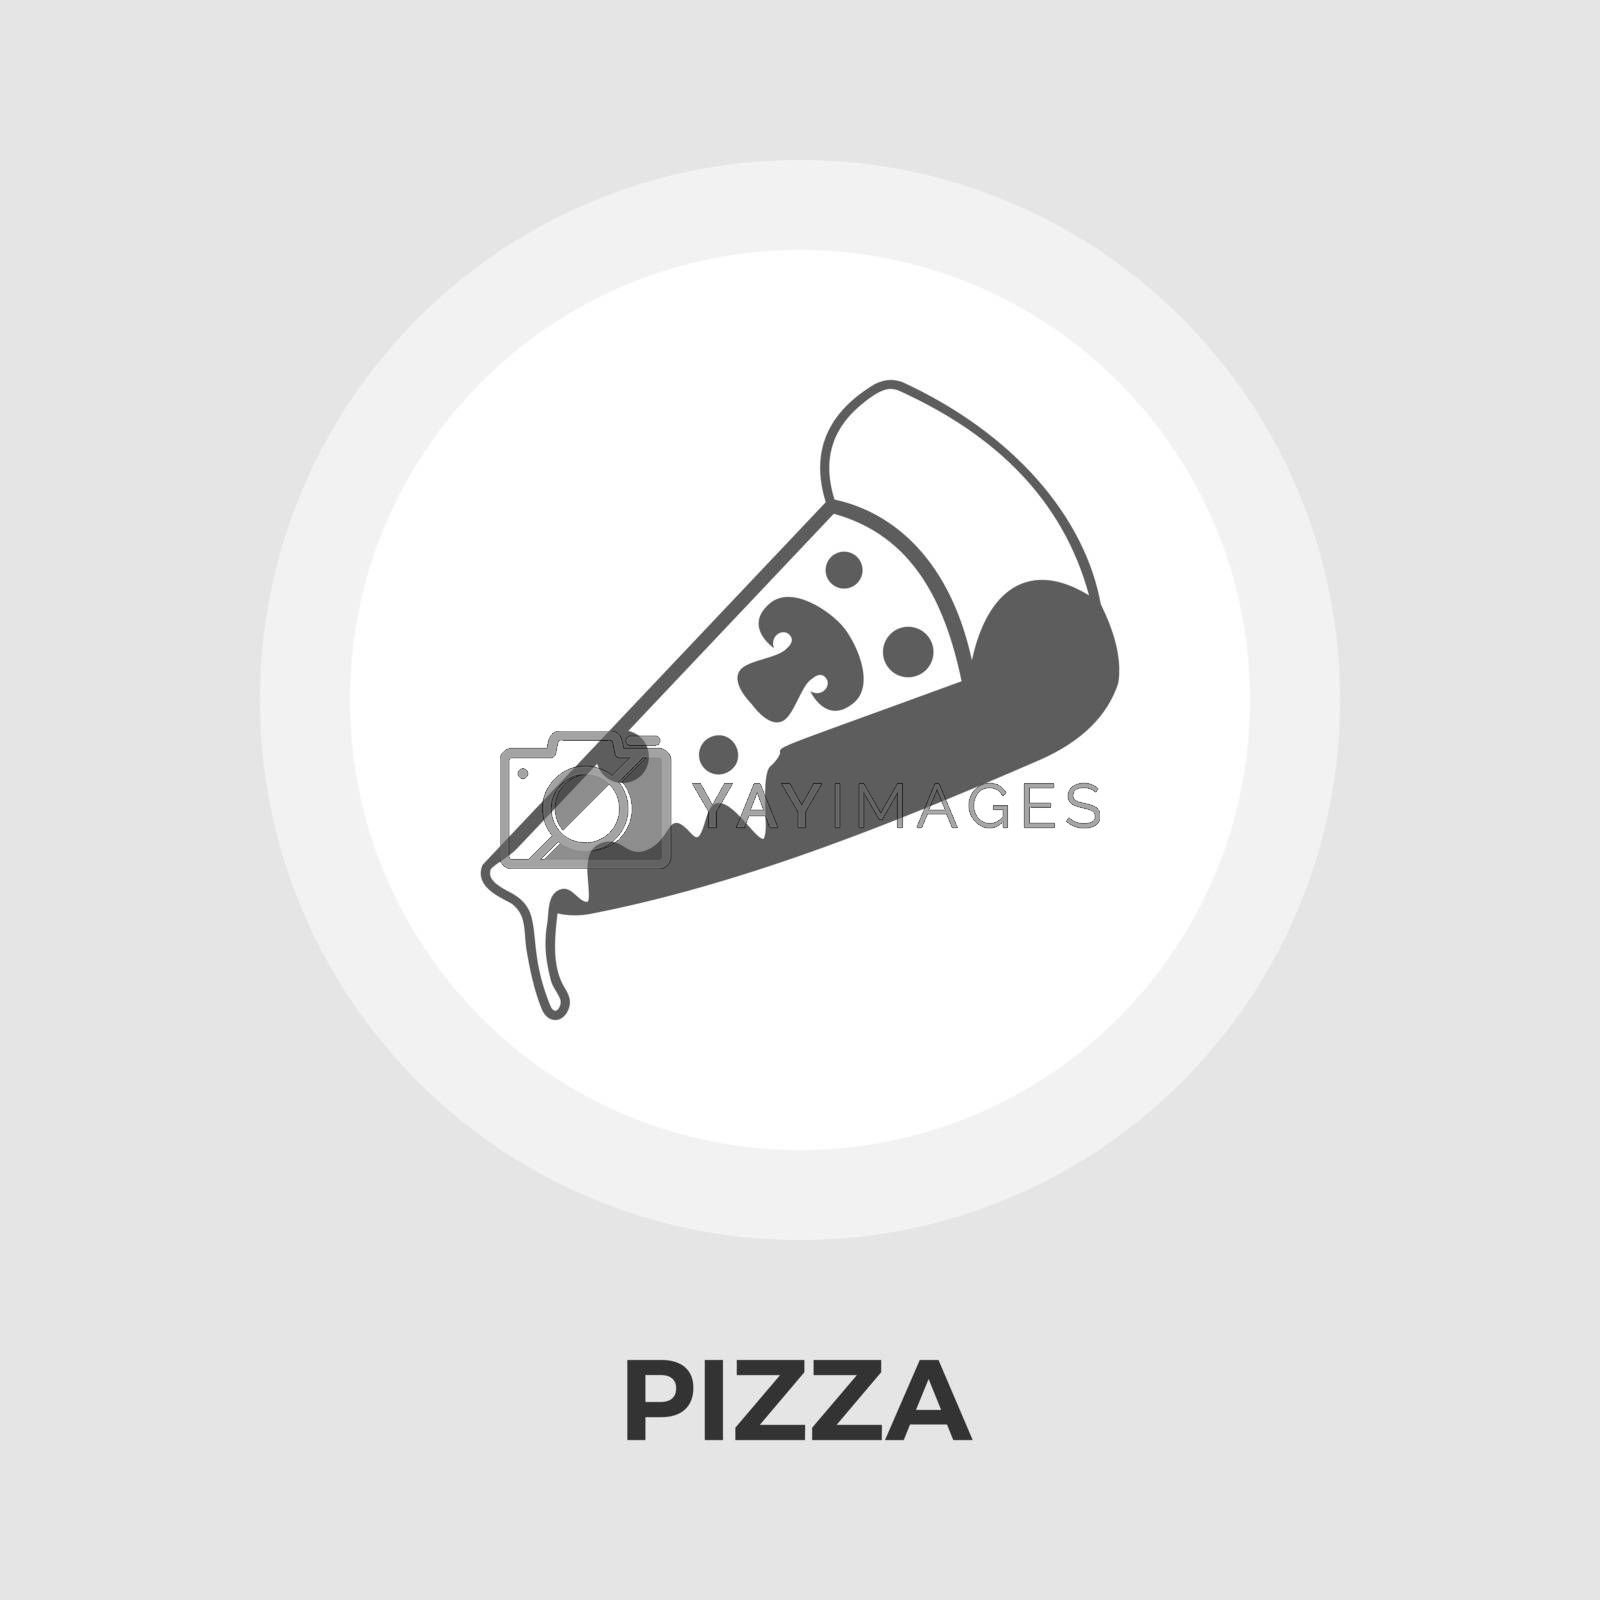 Pizza icon vector. Flat icon isolated on the white background. Editable EPS file. Vector illustration.